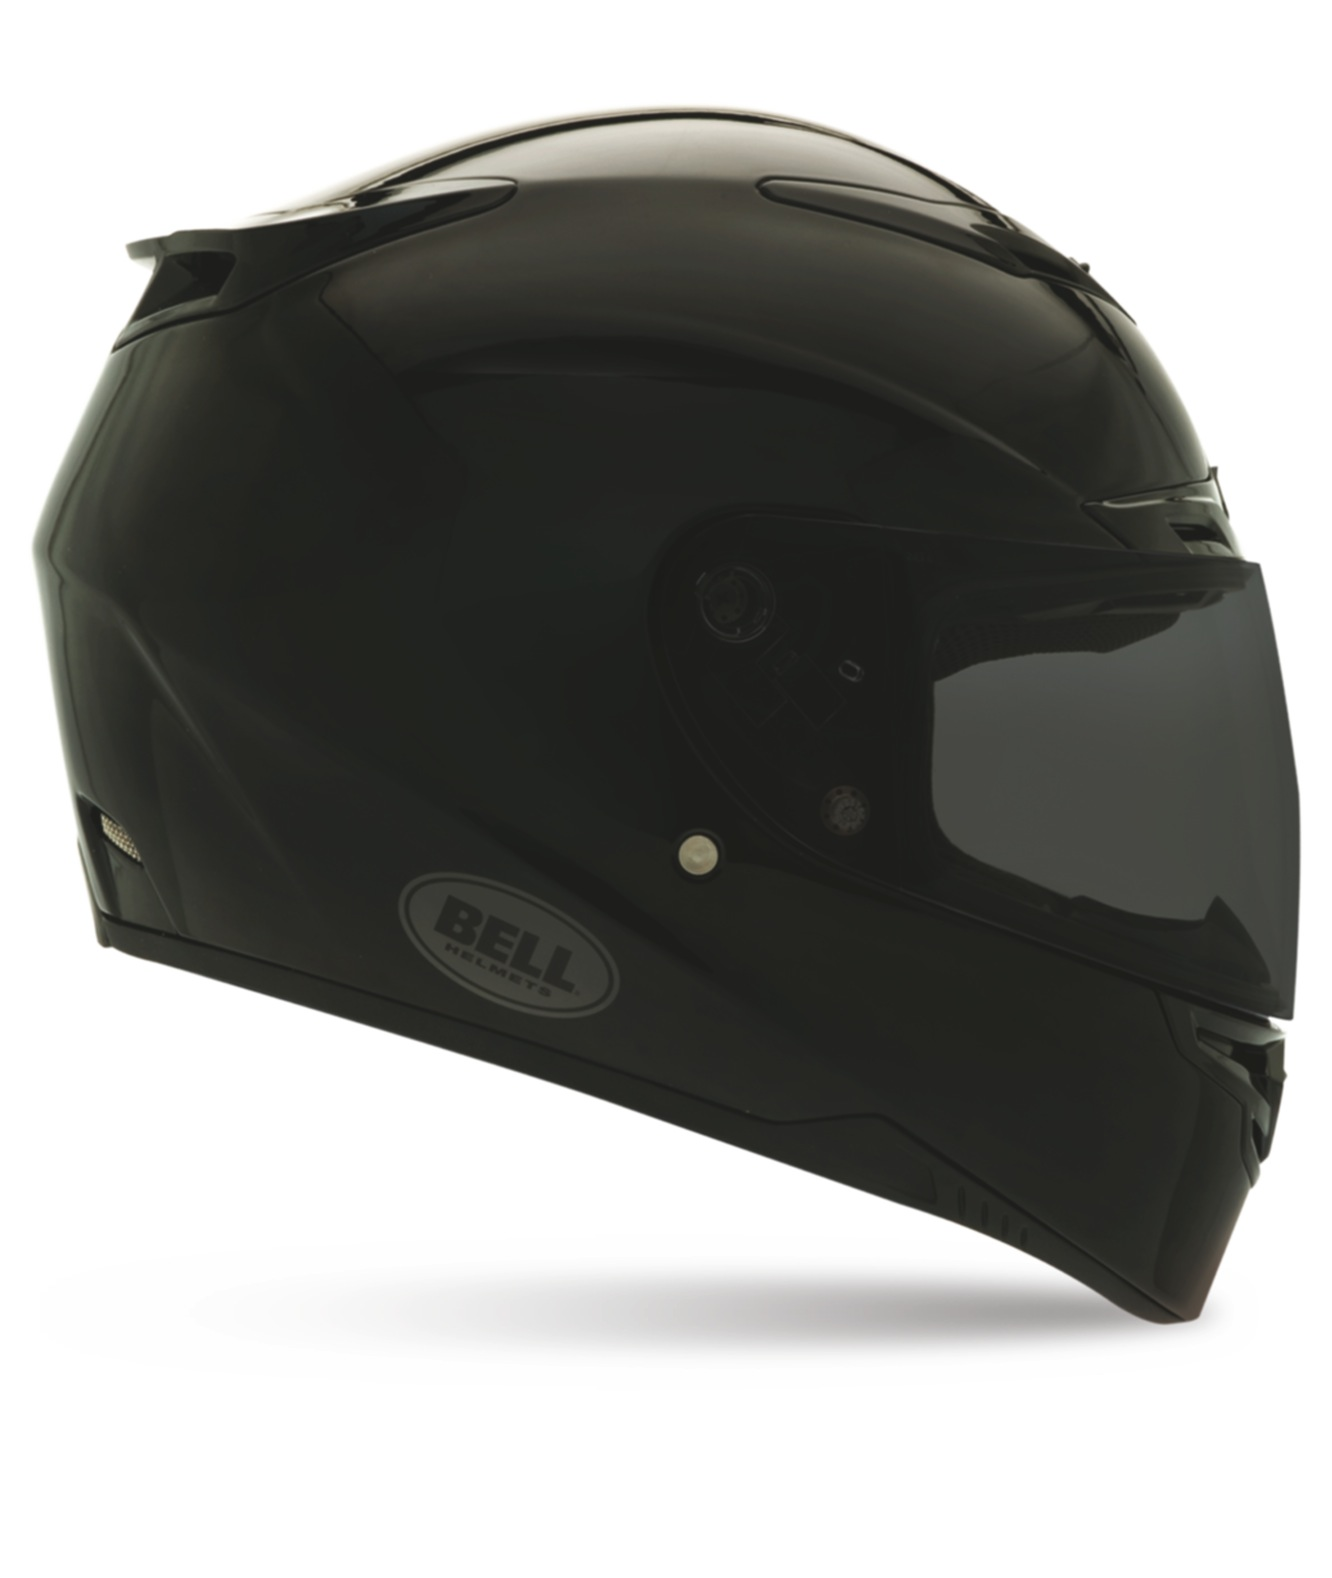 Lightsensing LCD motorcycle helmet visor selftints in an